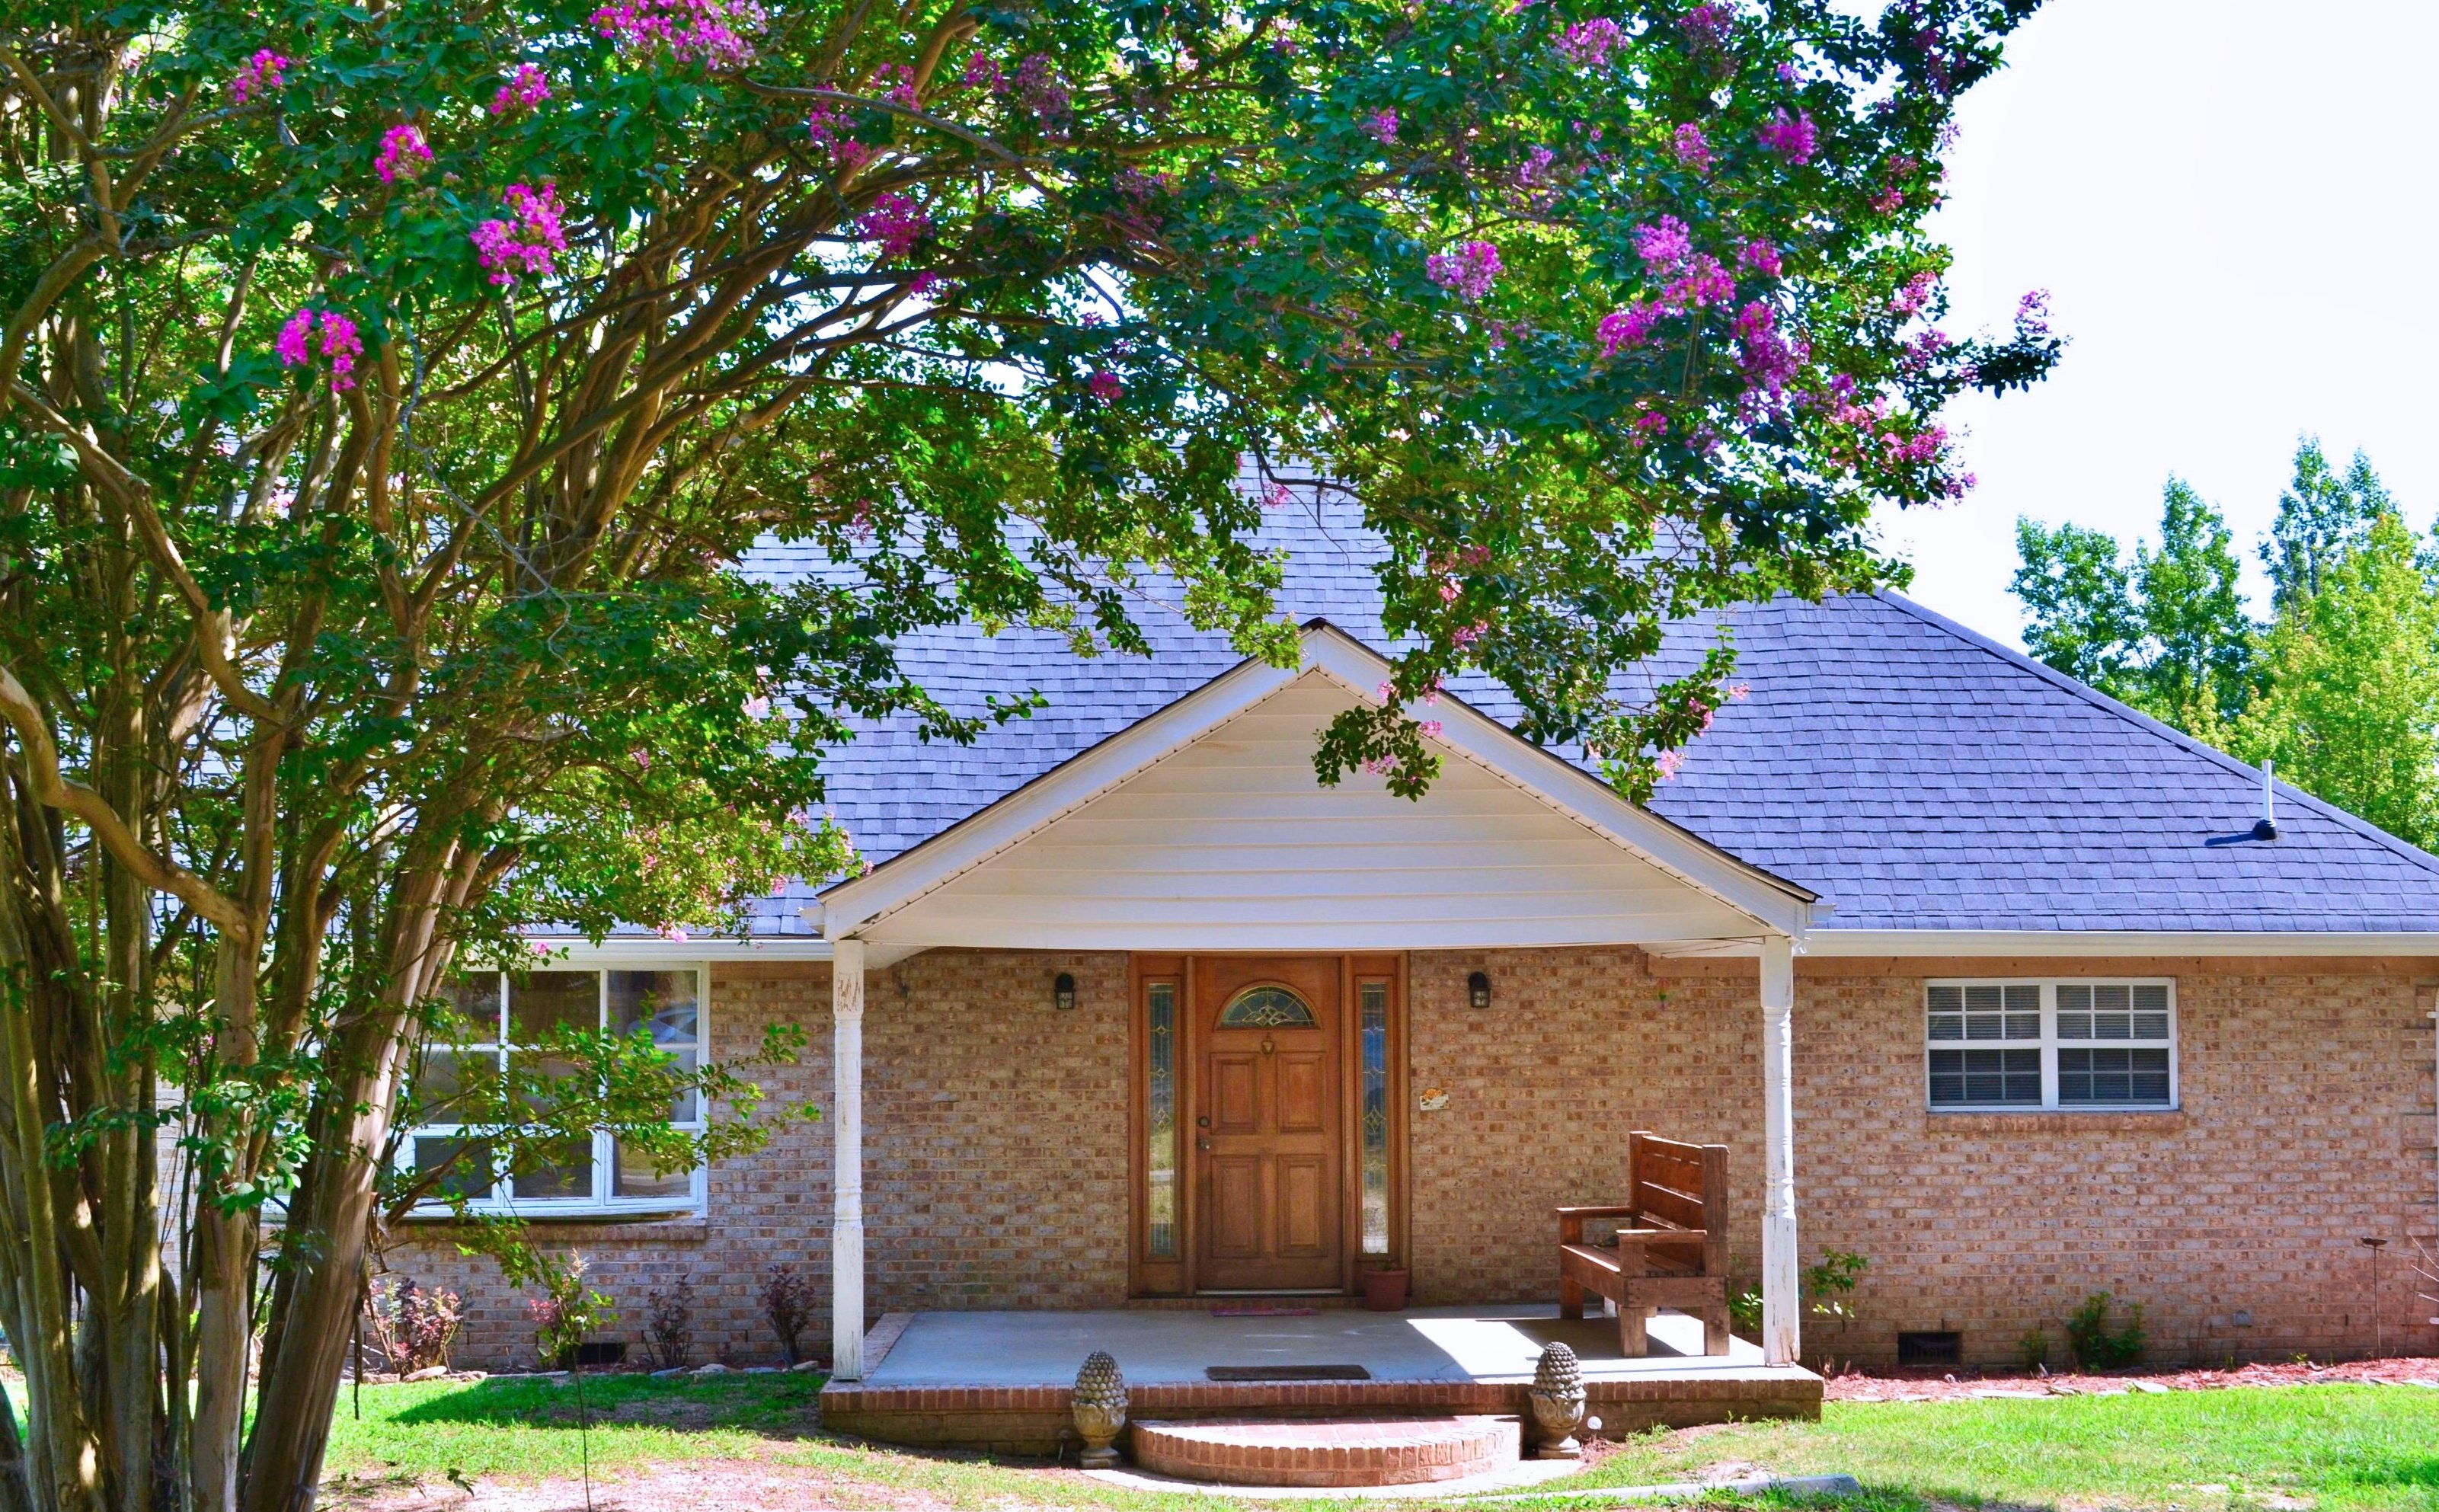 614 Brockland Lane Cheraw Chesterfield Co Sc Country Home For Sale Exp Realty